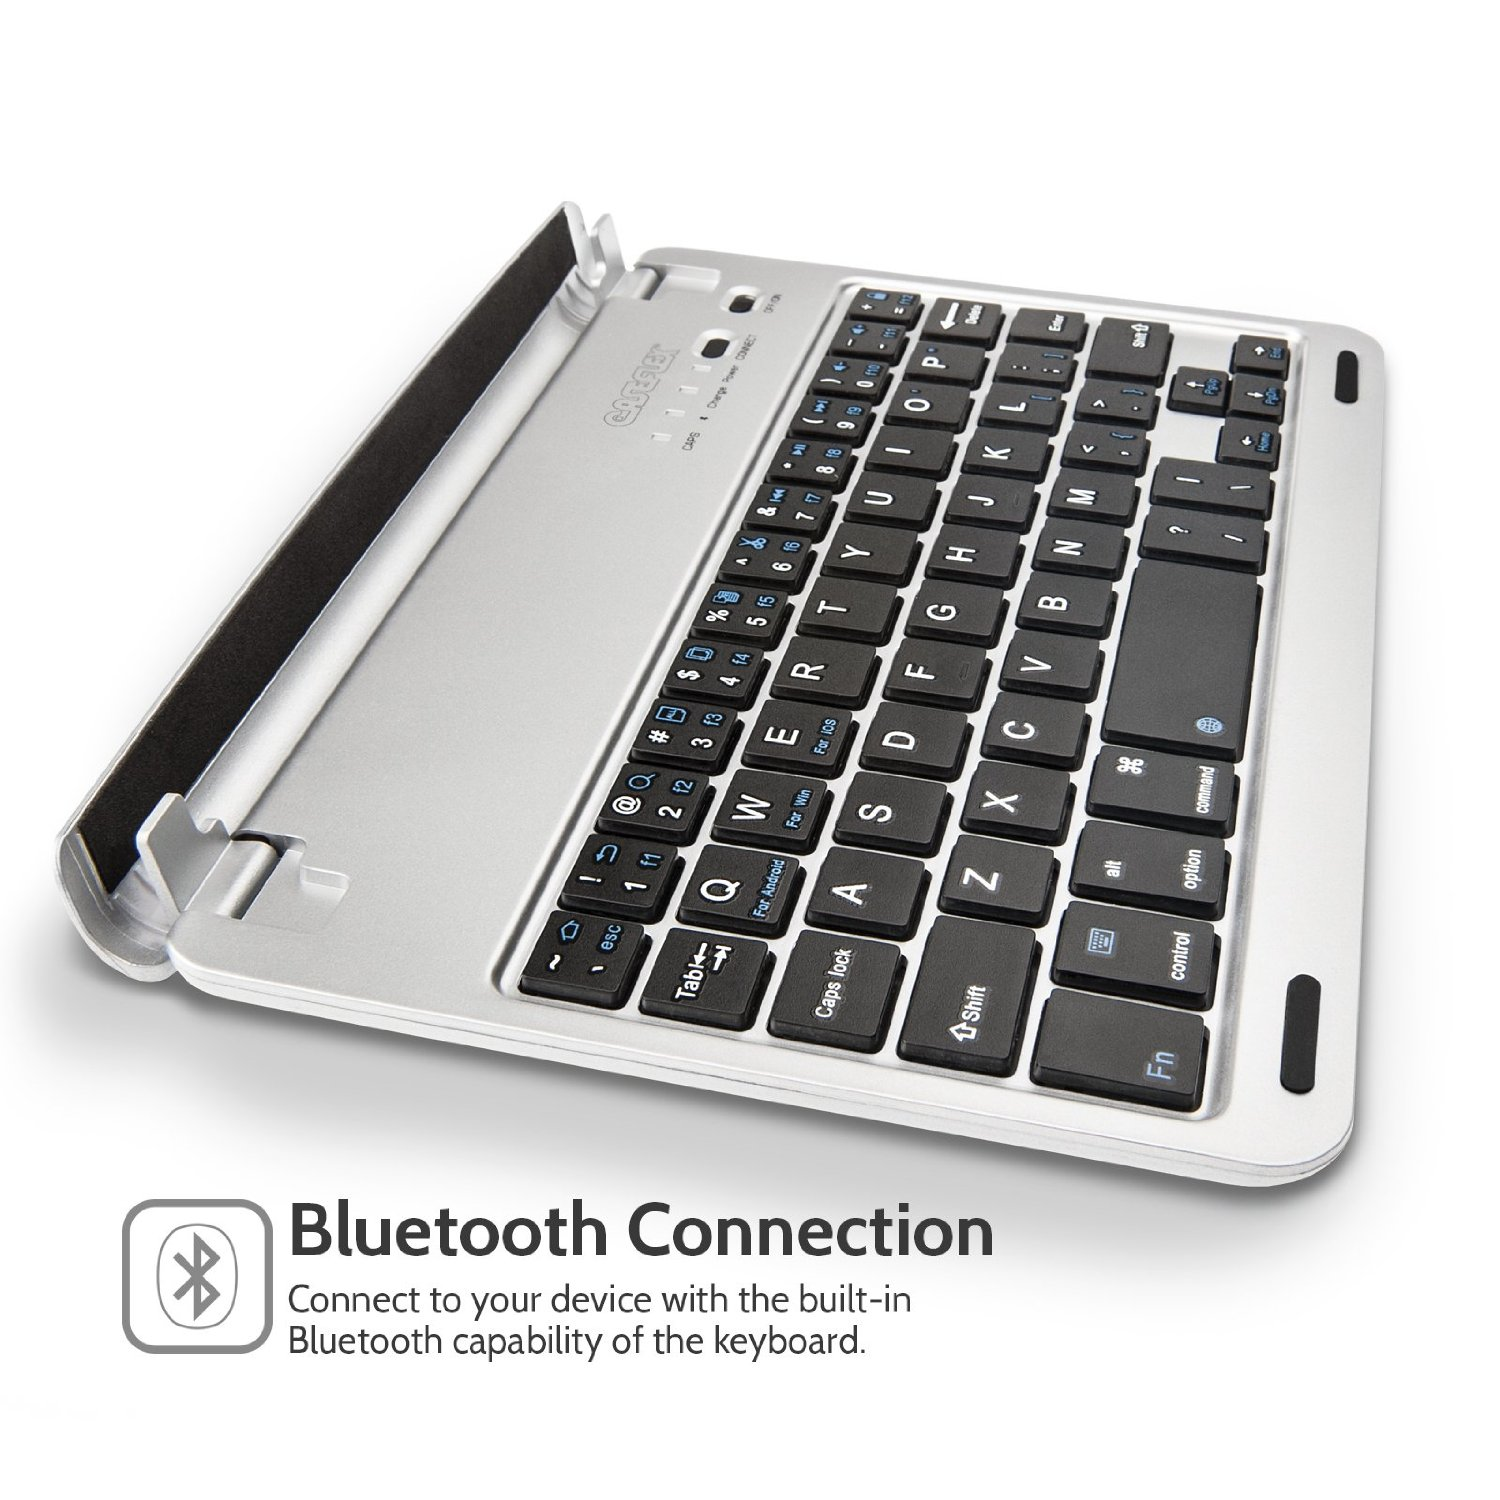 b48550110c8 Make image full screen · Caseflex Ultra Thin Silver Bluetooth Keyboard With Magnetic  Grip & Holding Stand ...